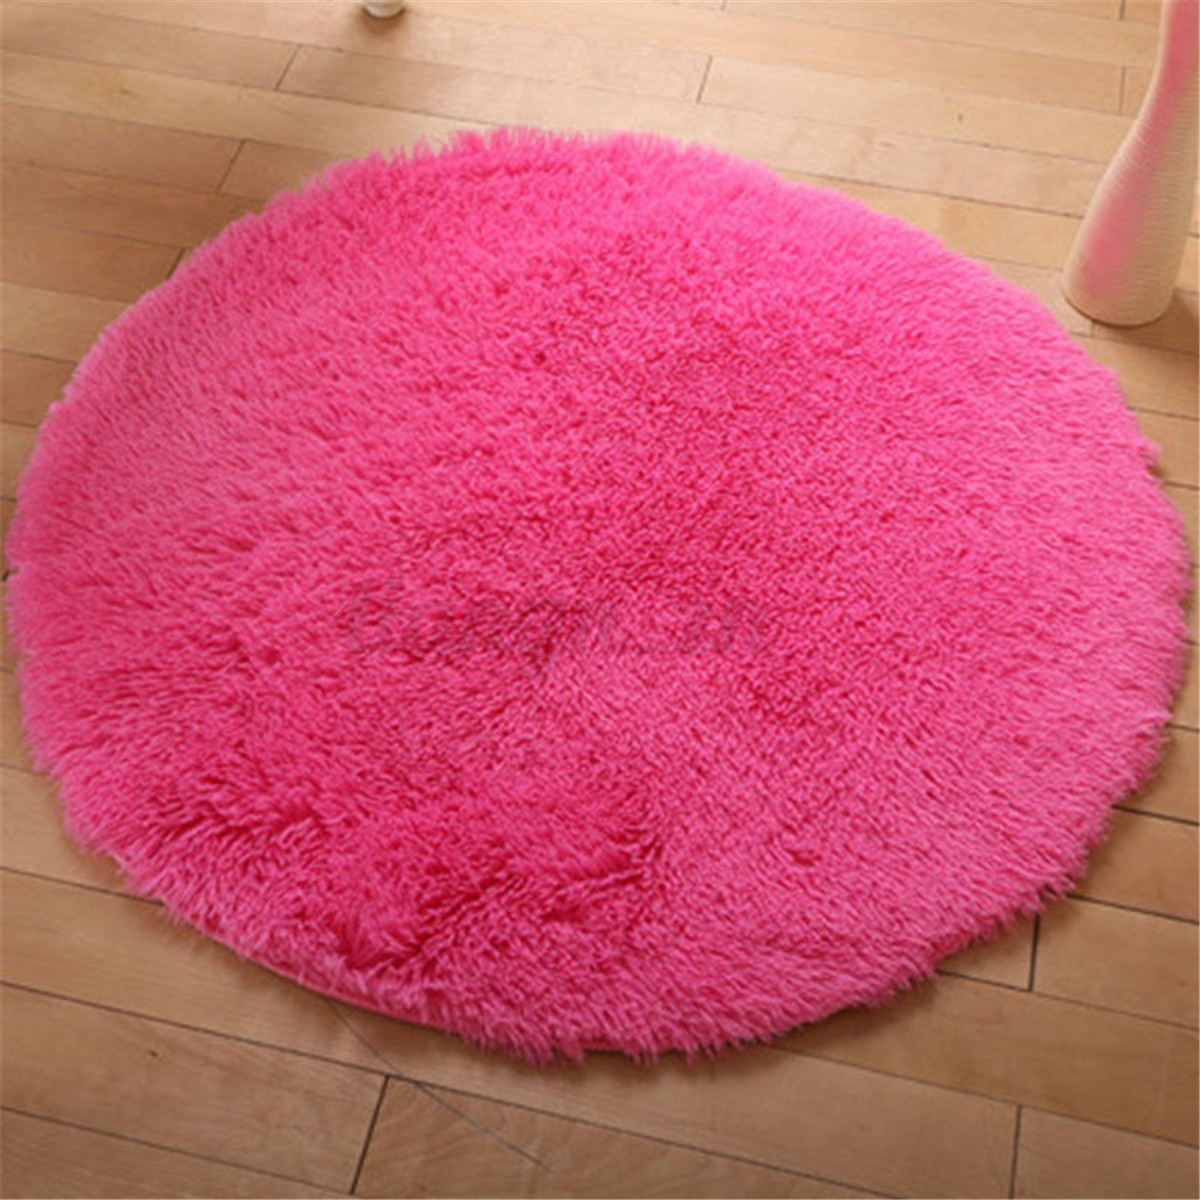 rond tapis salle de bain chambre peluche antid rapant mat absorbant yoga 40cm eur 1 61. Black Bedroom Furniture Sets. Home Design Ideas